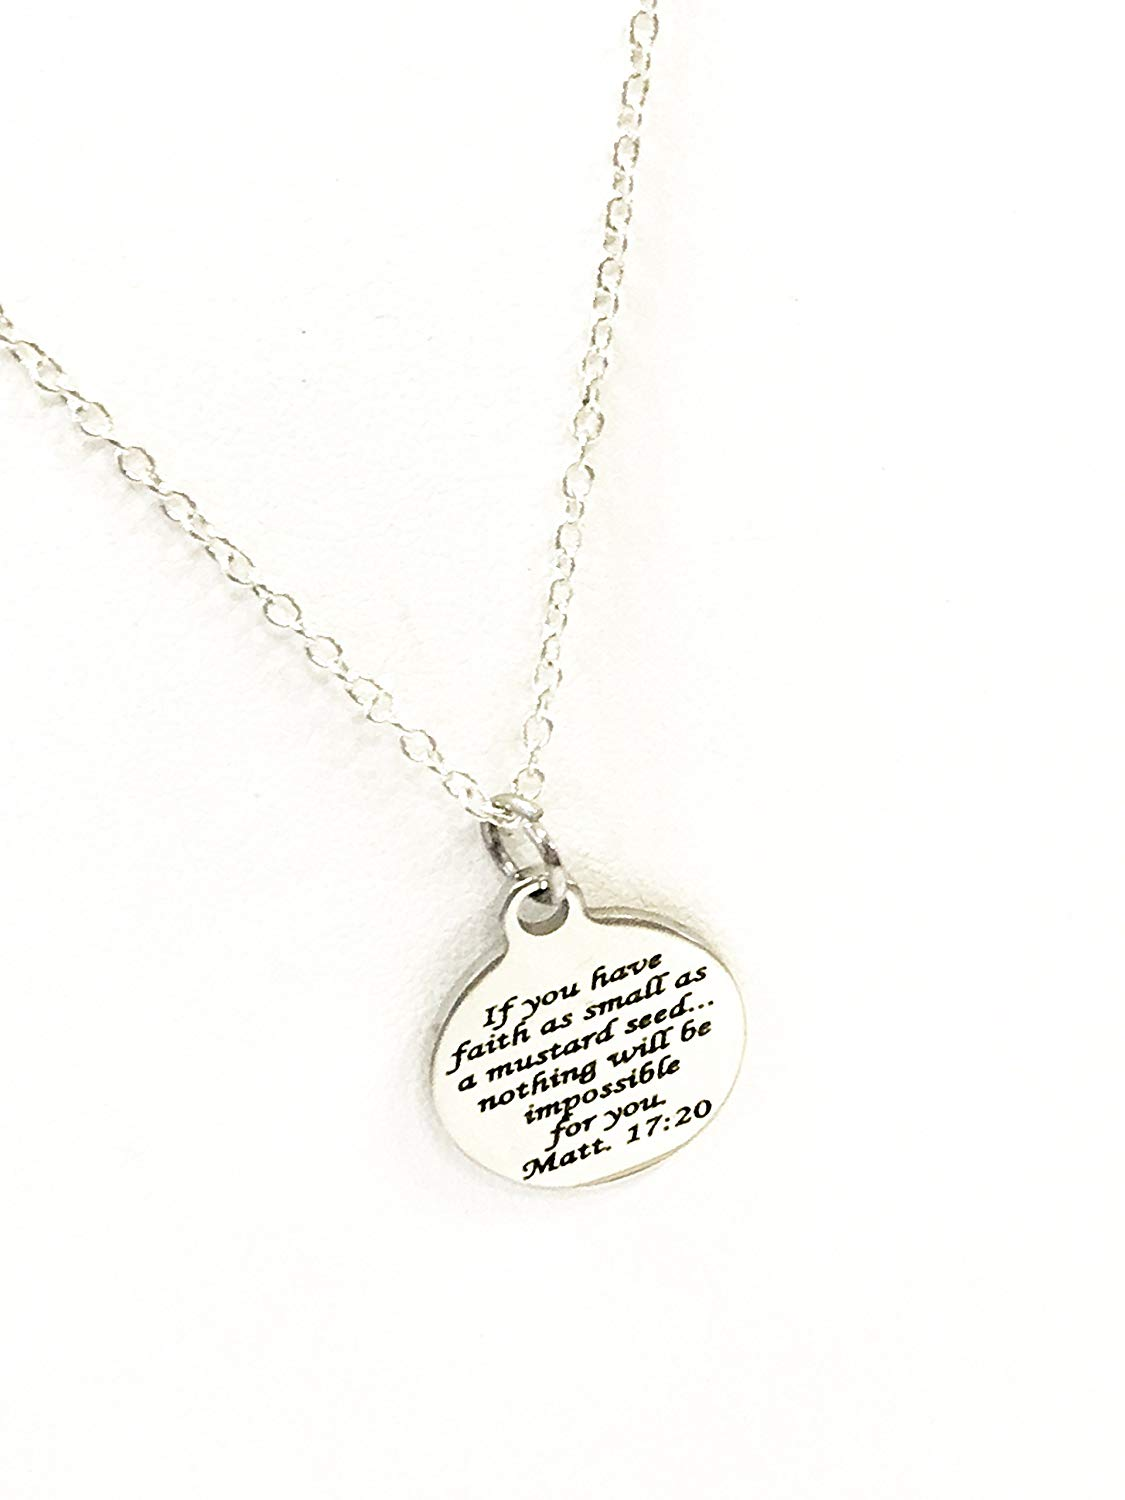 Scripture Gifts, Scripture Jewelry, Mustard Seed Verse Necklace, Christian Gifts, Scripture Necklace, Bible Verse Gfits, Baptism Gifts